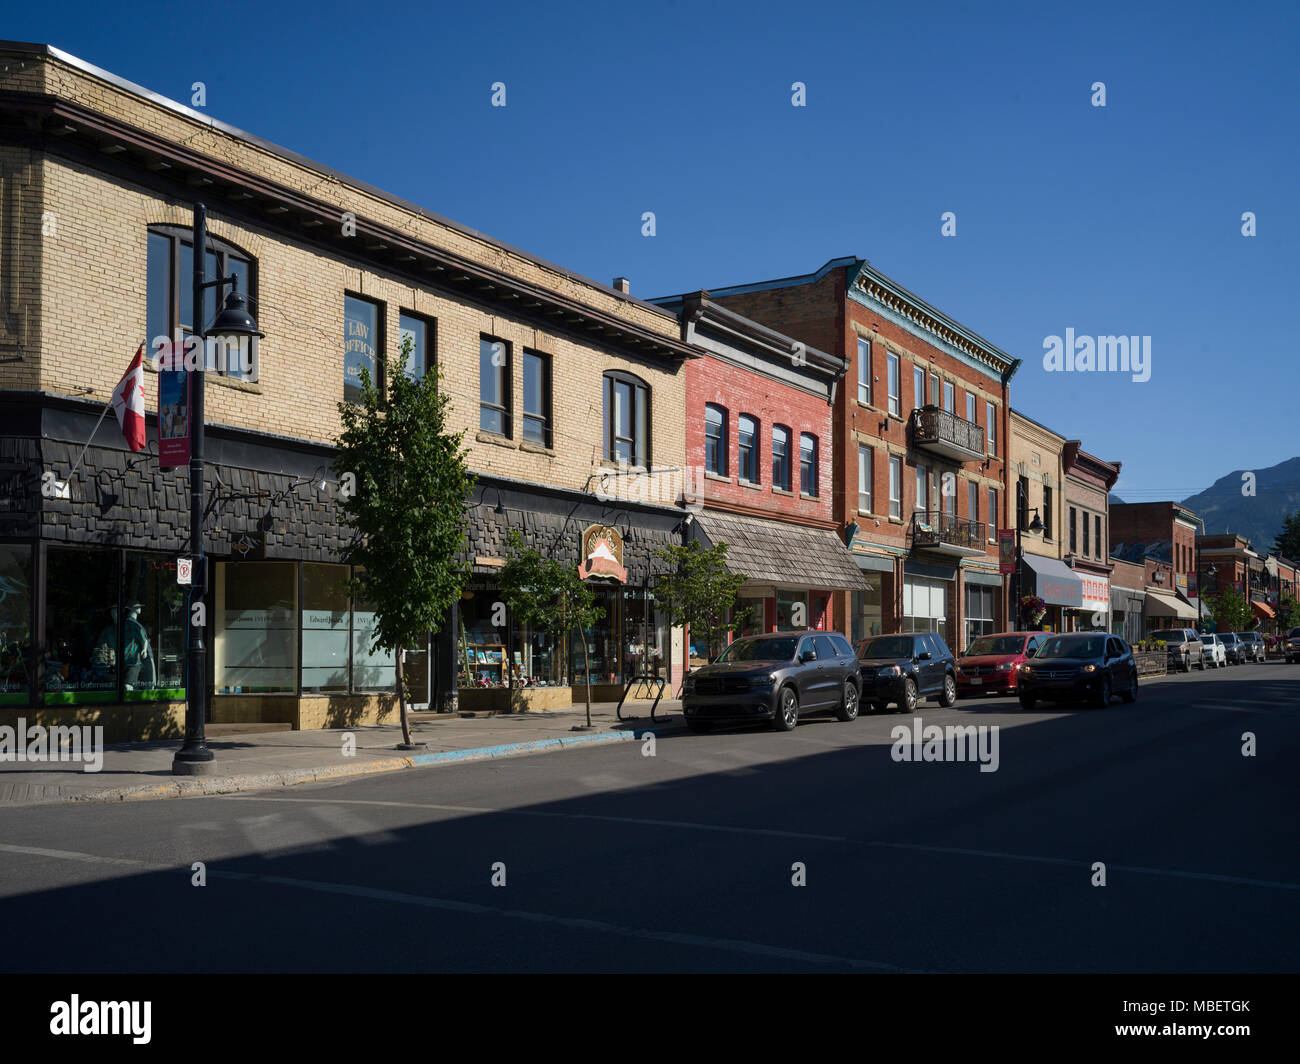 Cars parked at roadside, Fernie, British Columbia, Canada - Stock Image